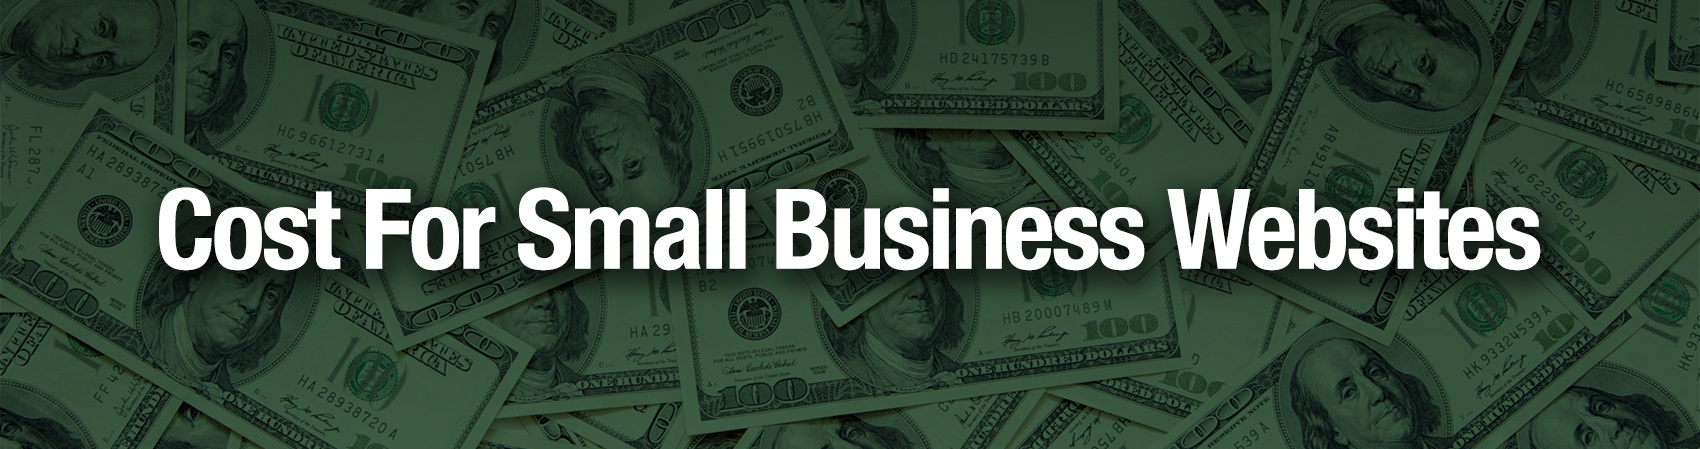 Cost-For-Small-Business-Websites